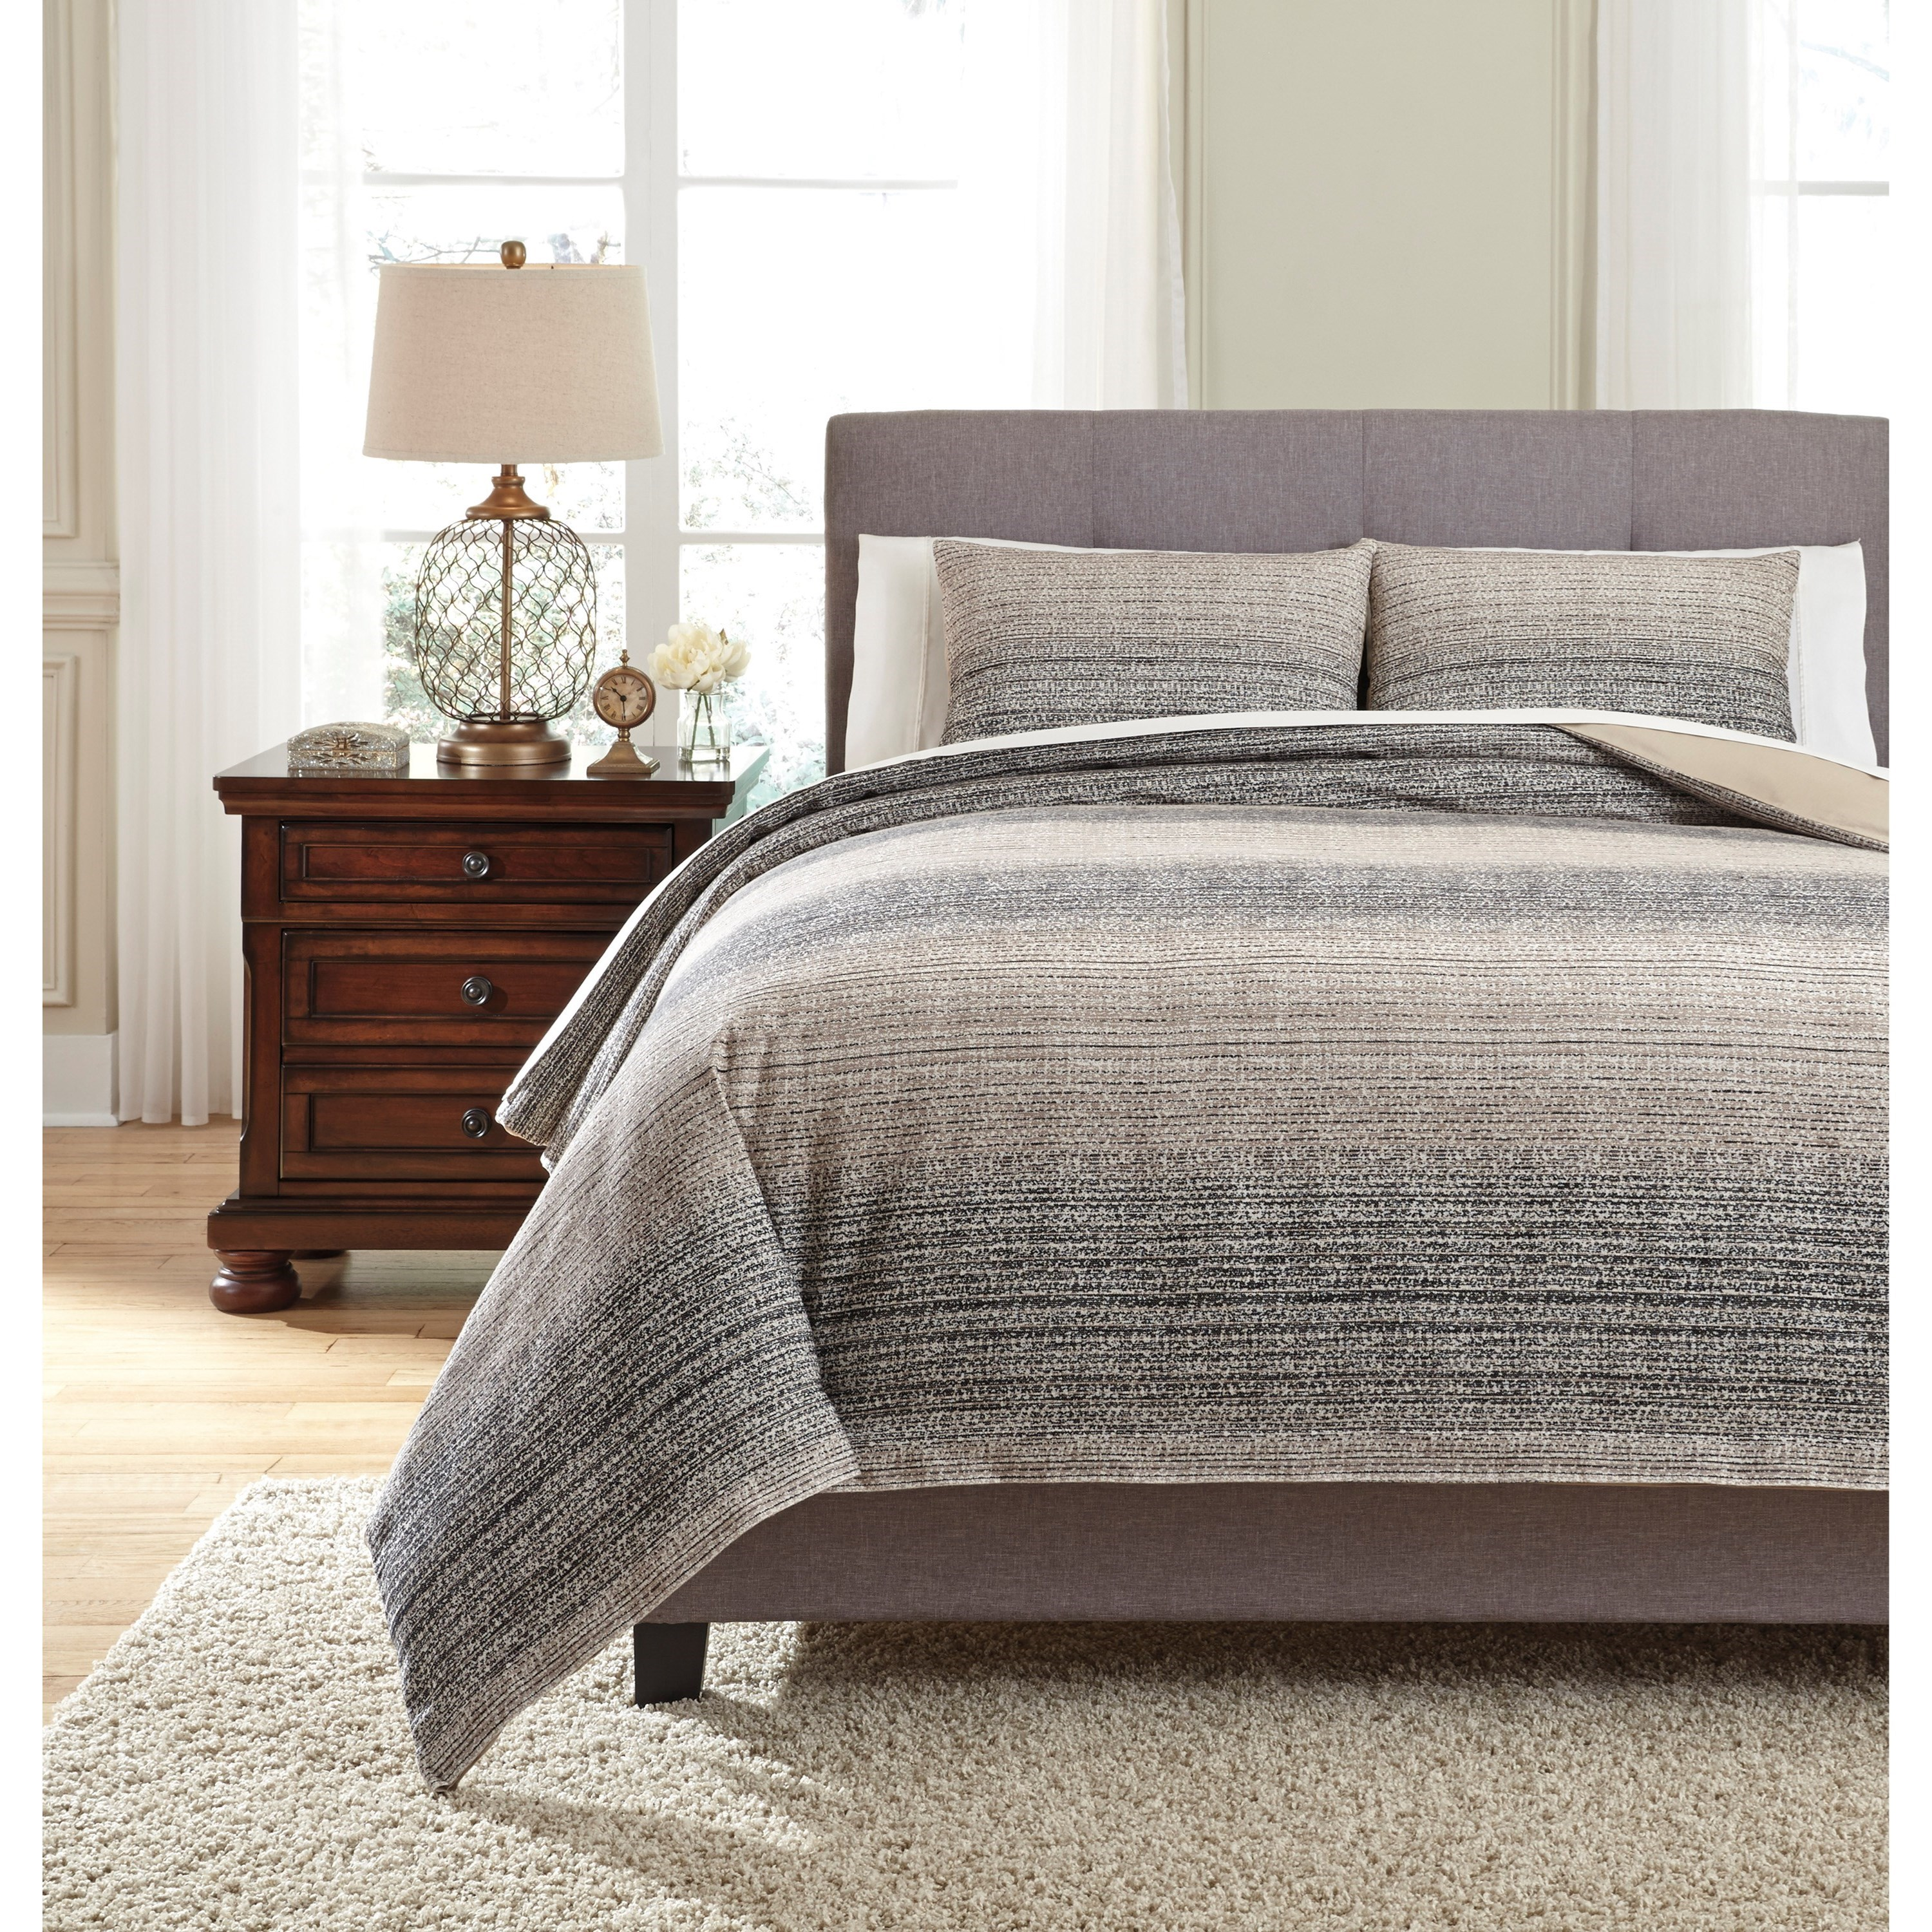 Bedding Sets King Arturo Natural/Charcoal Duvet Cover Set by Signature Design by Ashley at Sparks HomeStore